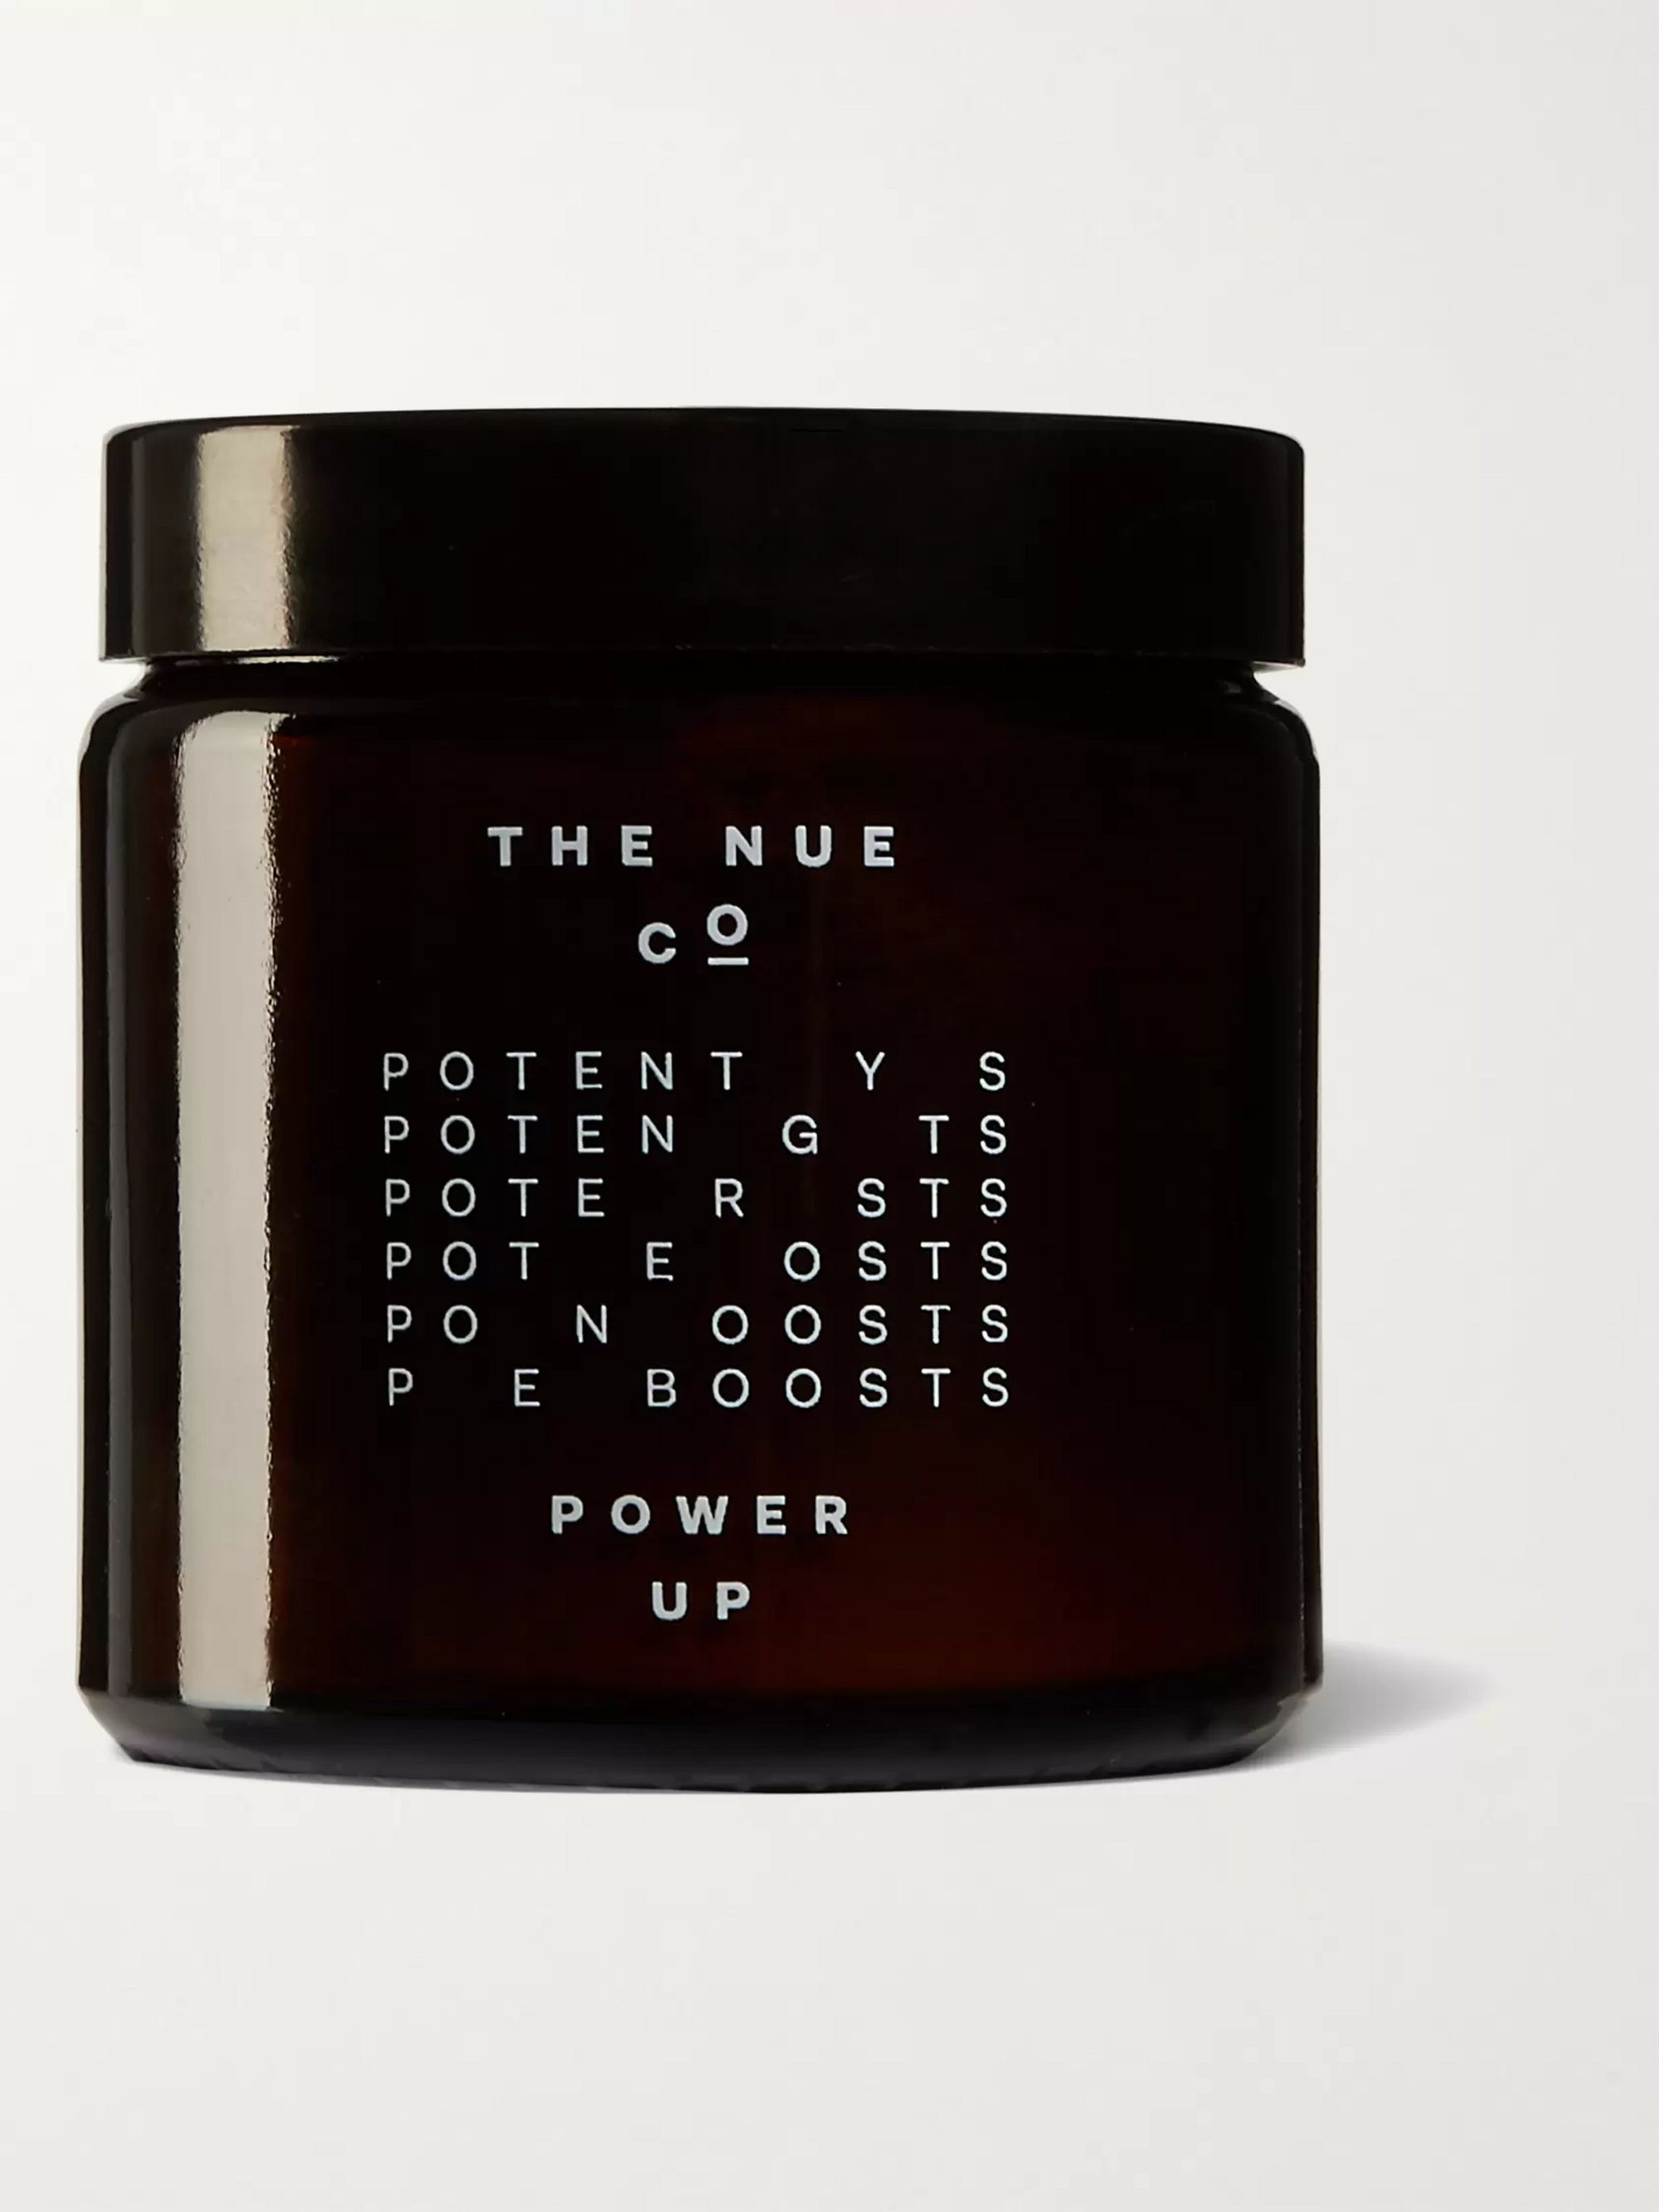 The Nue Co. Power Up, 70g